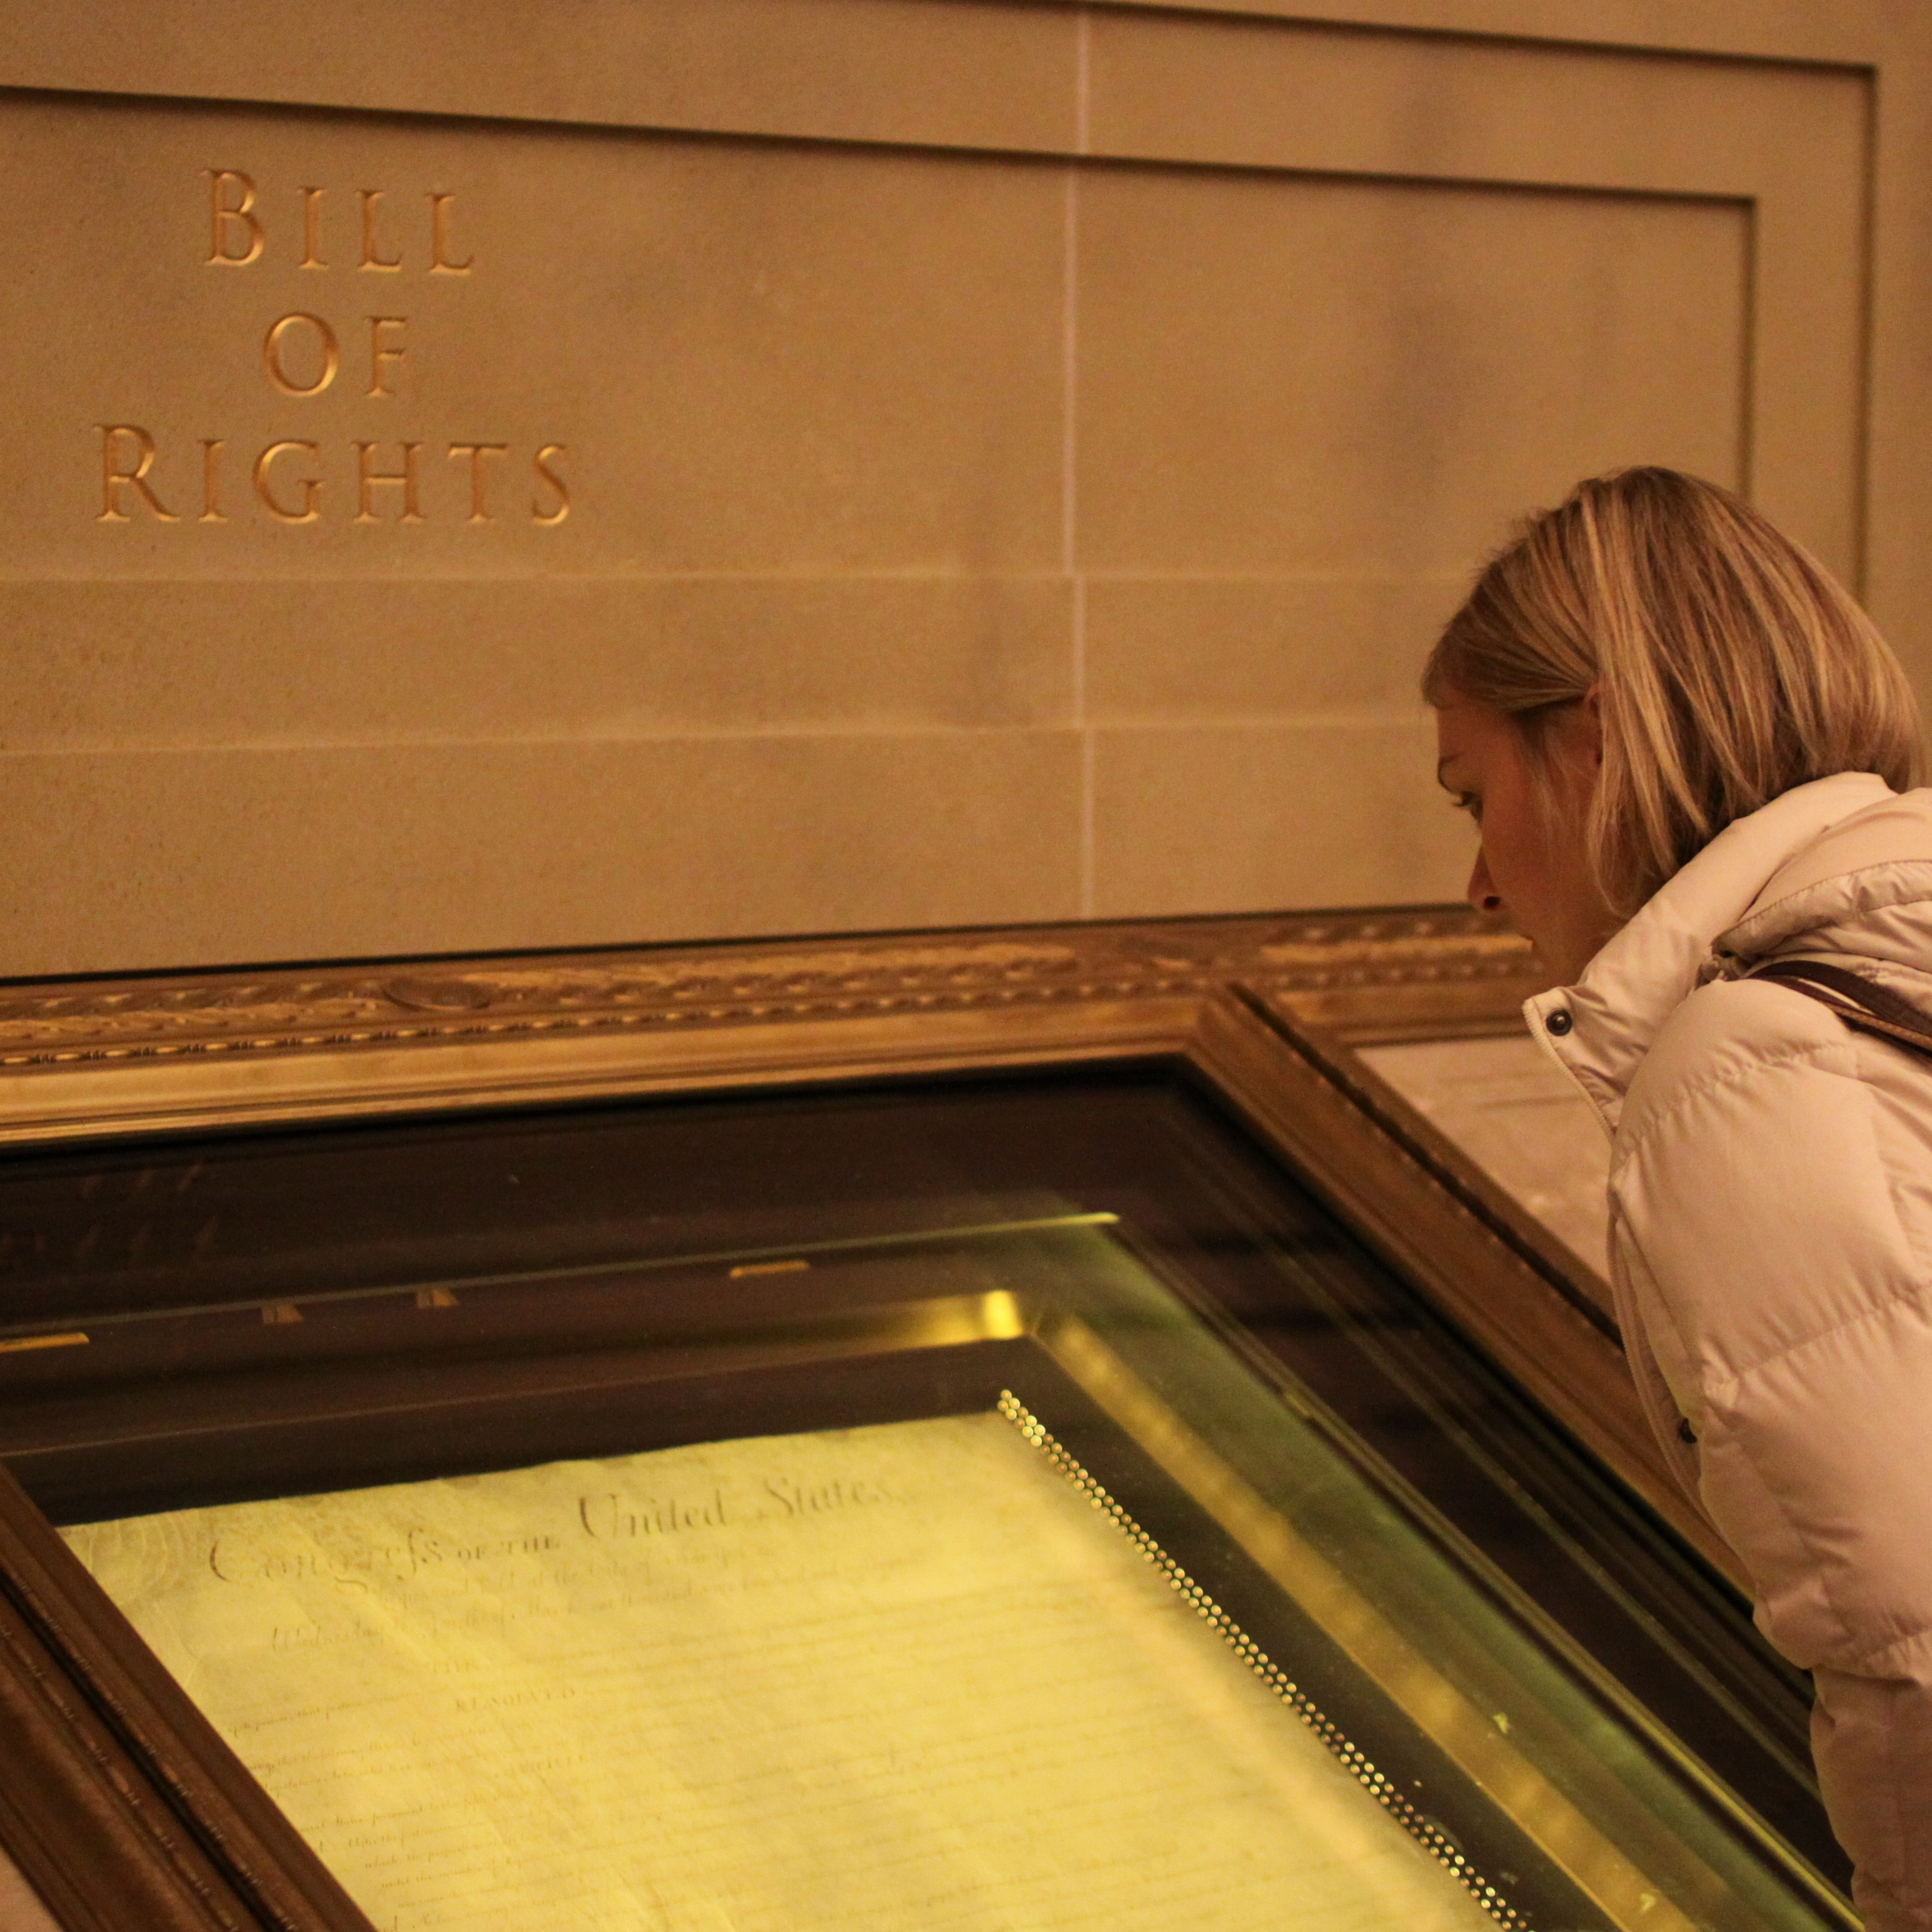 A visitor to the National Archives in Washington, D.C., looks over the U.S. Bill of Rights. But how the Fourth Amendment is applied in a digital age is still being discussed in federal and state courtrooms.